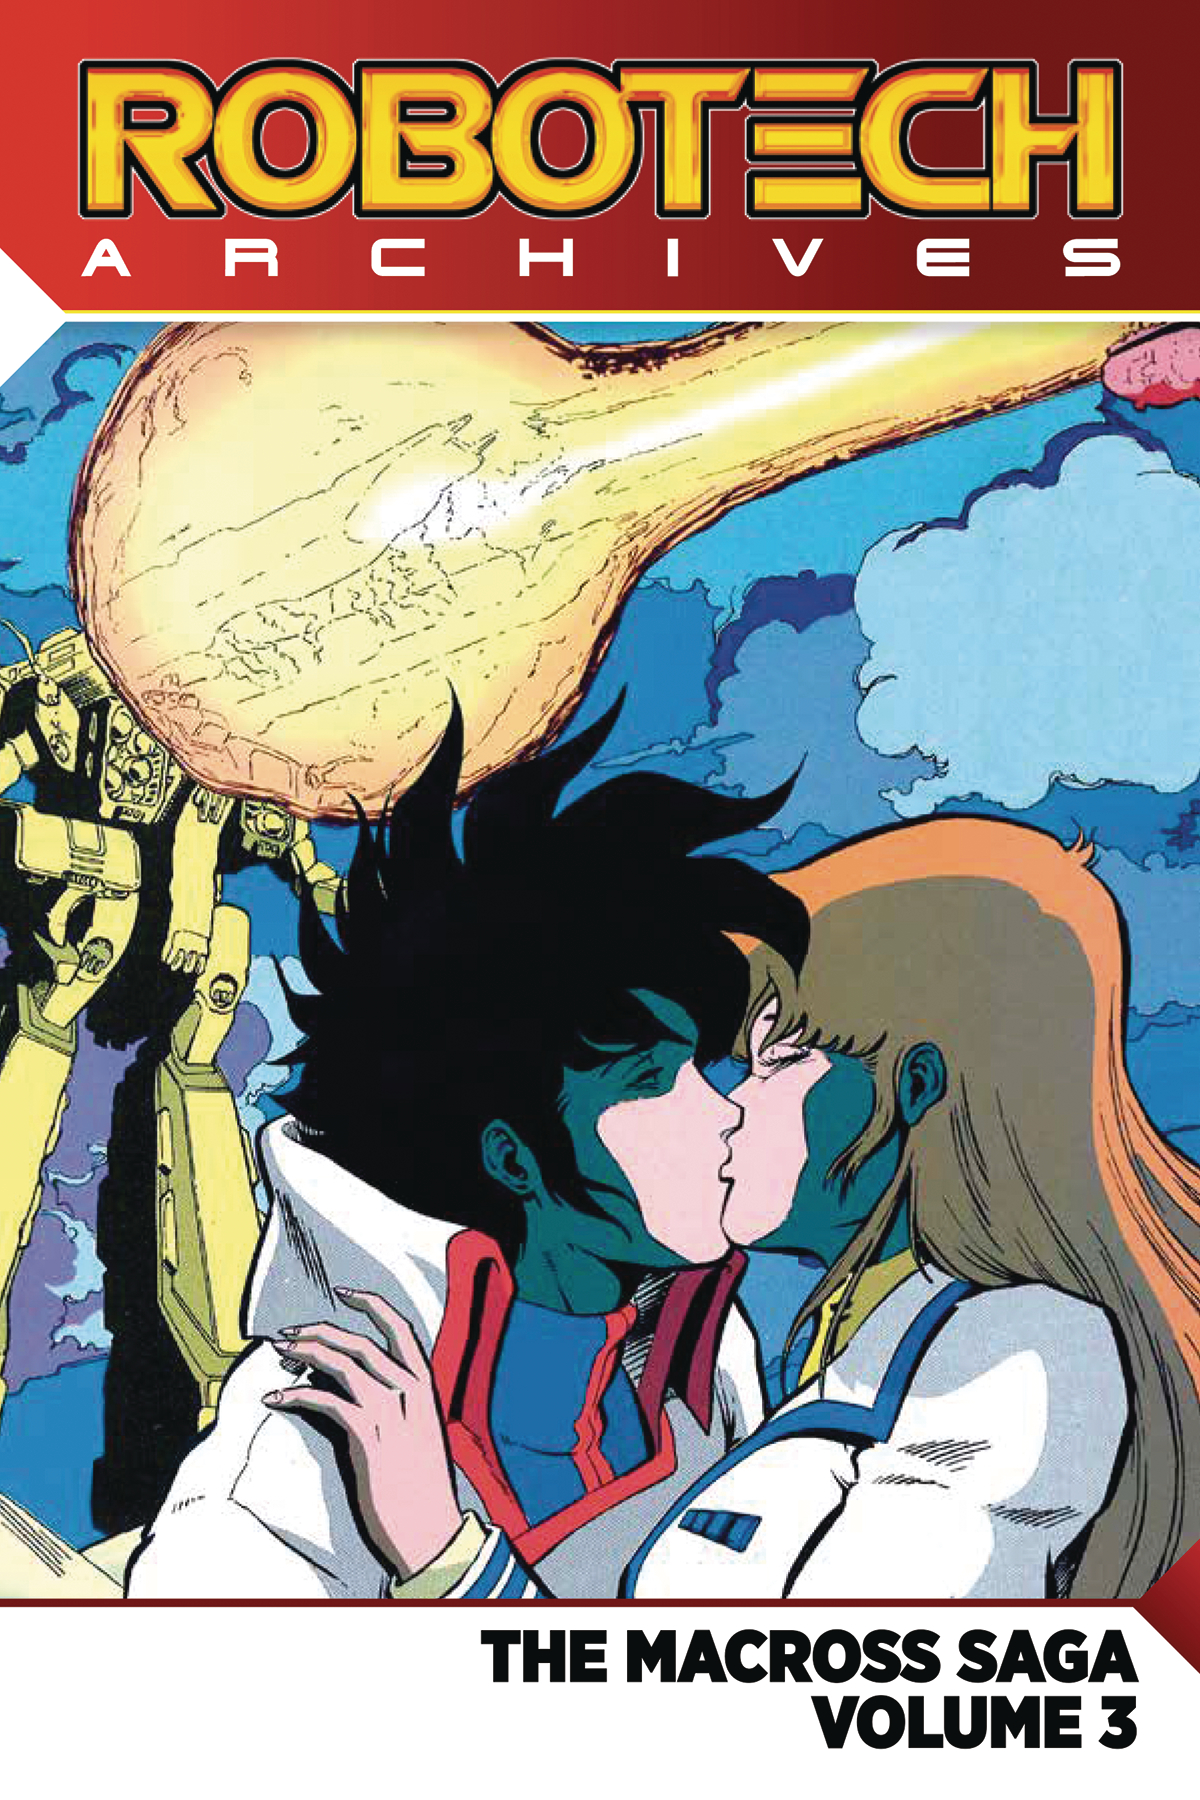 ROBOTECH ARCHIVES MACROSS SAGA TP VOL 03 (OF 3)